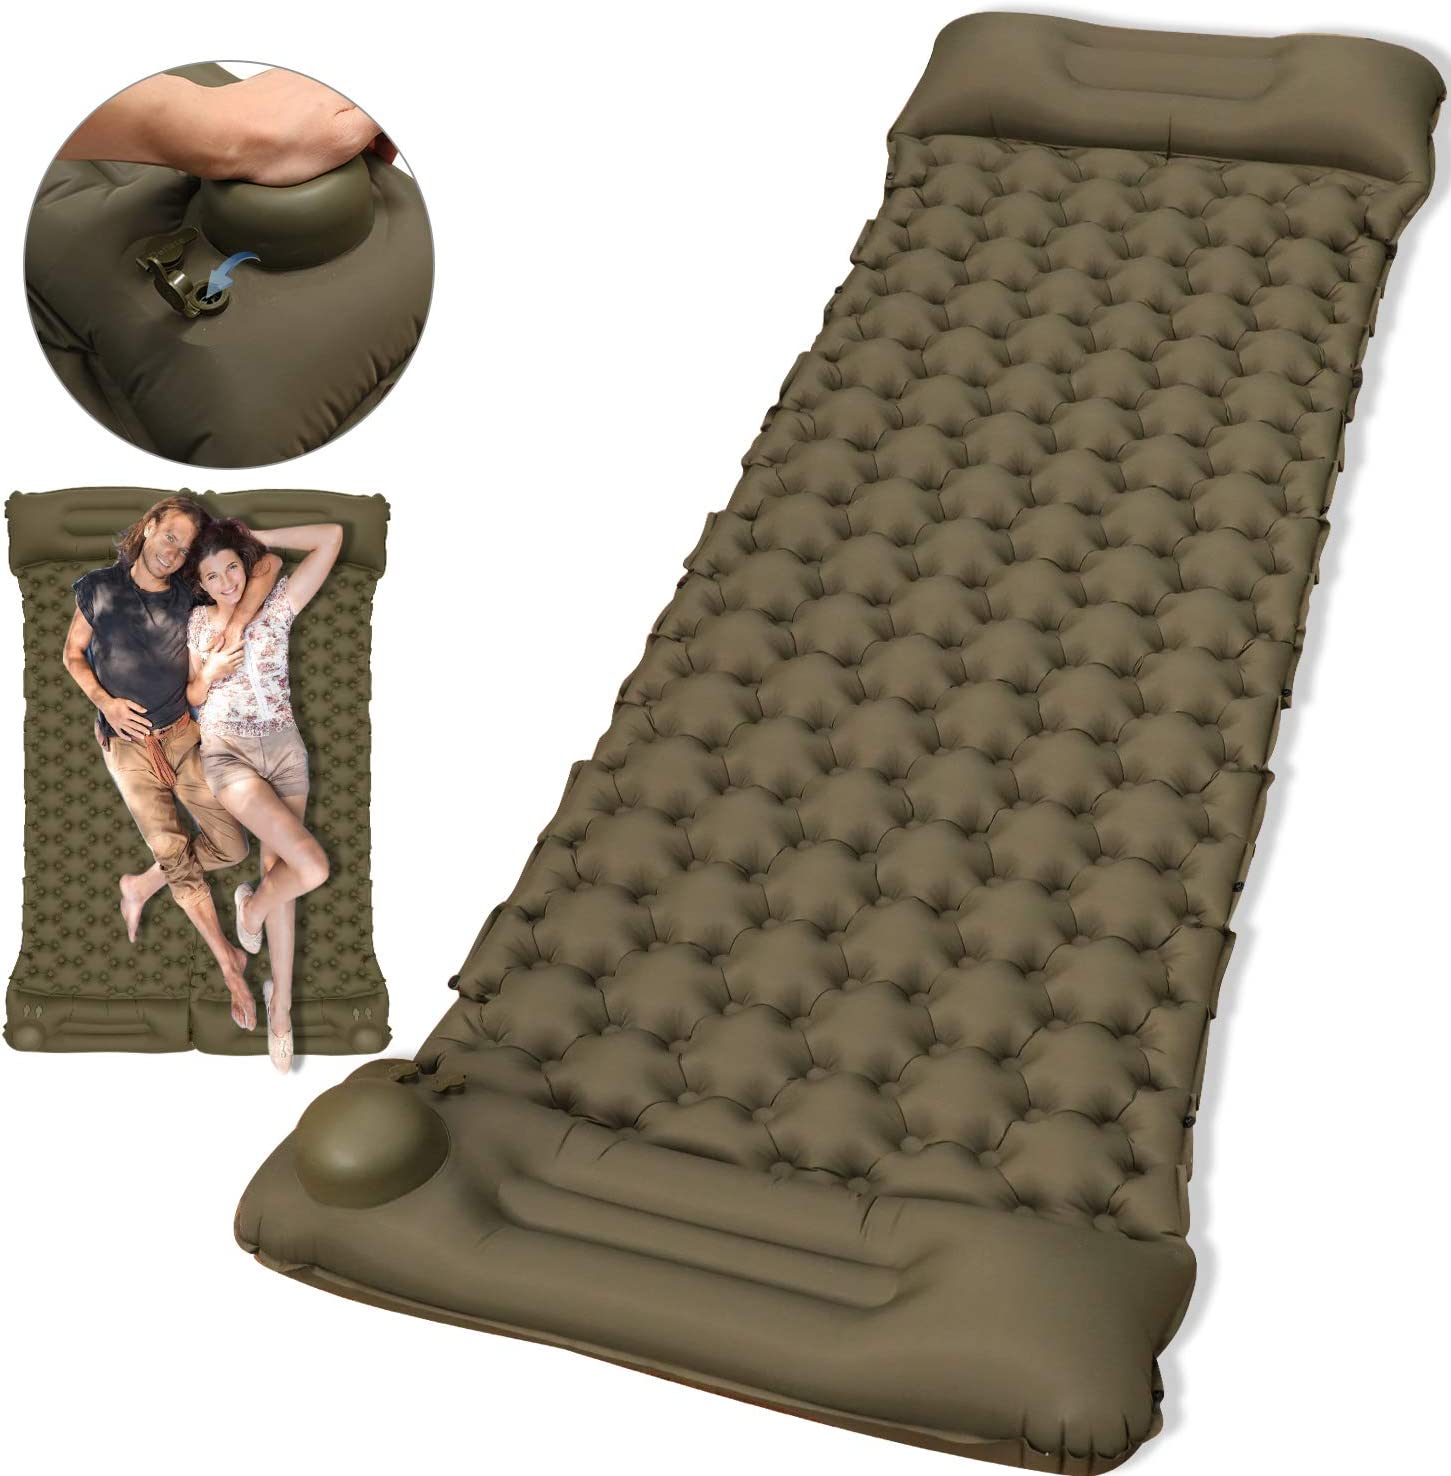 Camping Sleeping Pad Buttons To Make Double Air Mattress for Backpacking Inflatable /& Compact Lightweight Traveling 2020 Newest Ultralight Inflatable Sleeping Mat With Build-in Pump Hiking